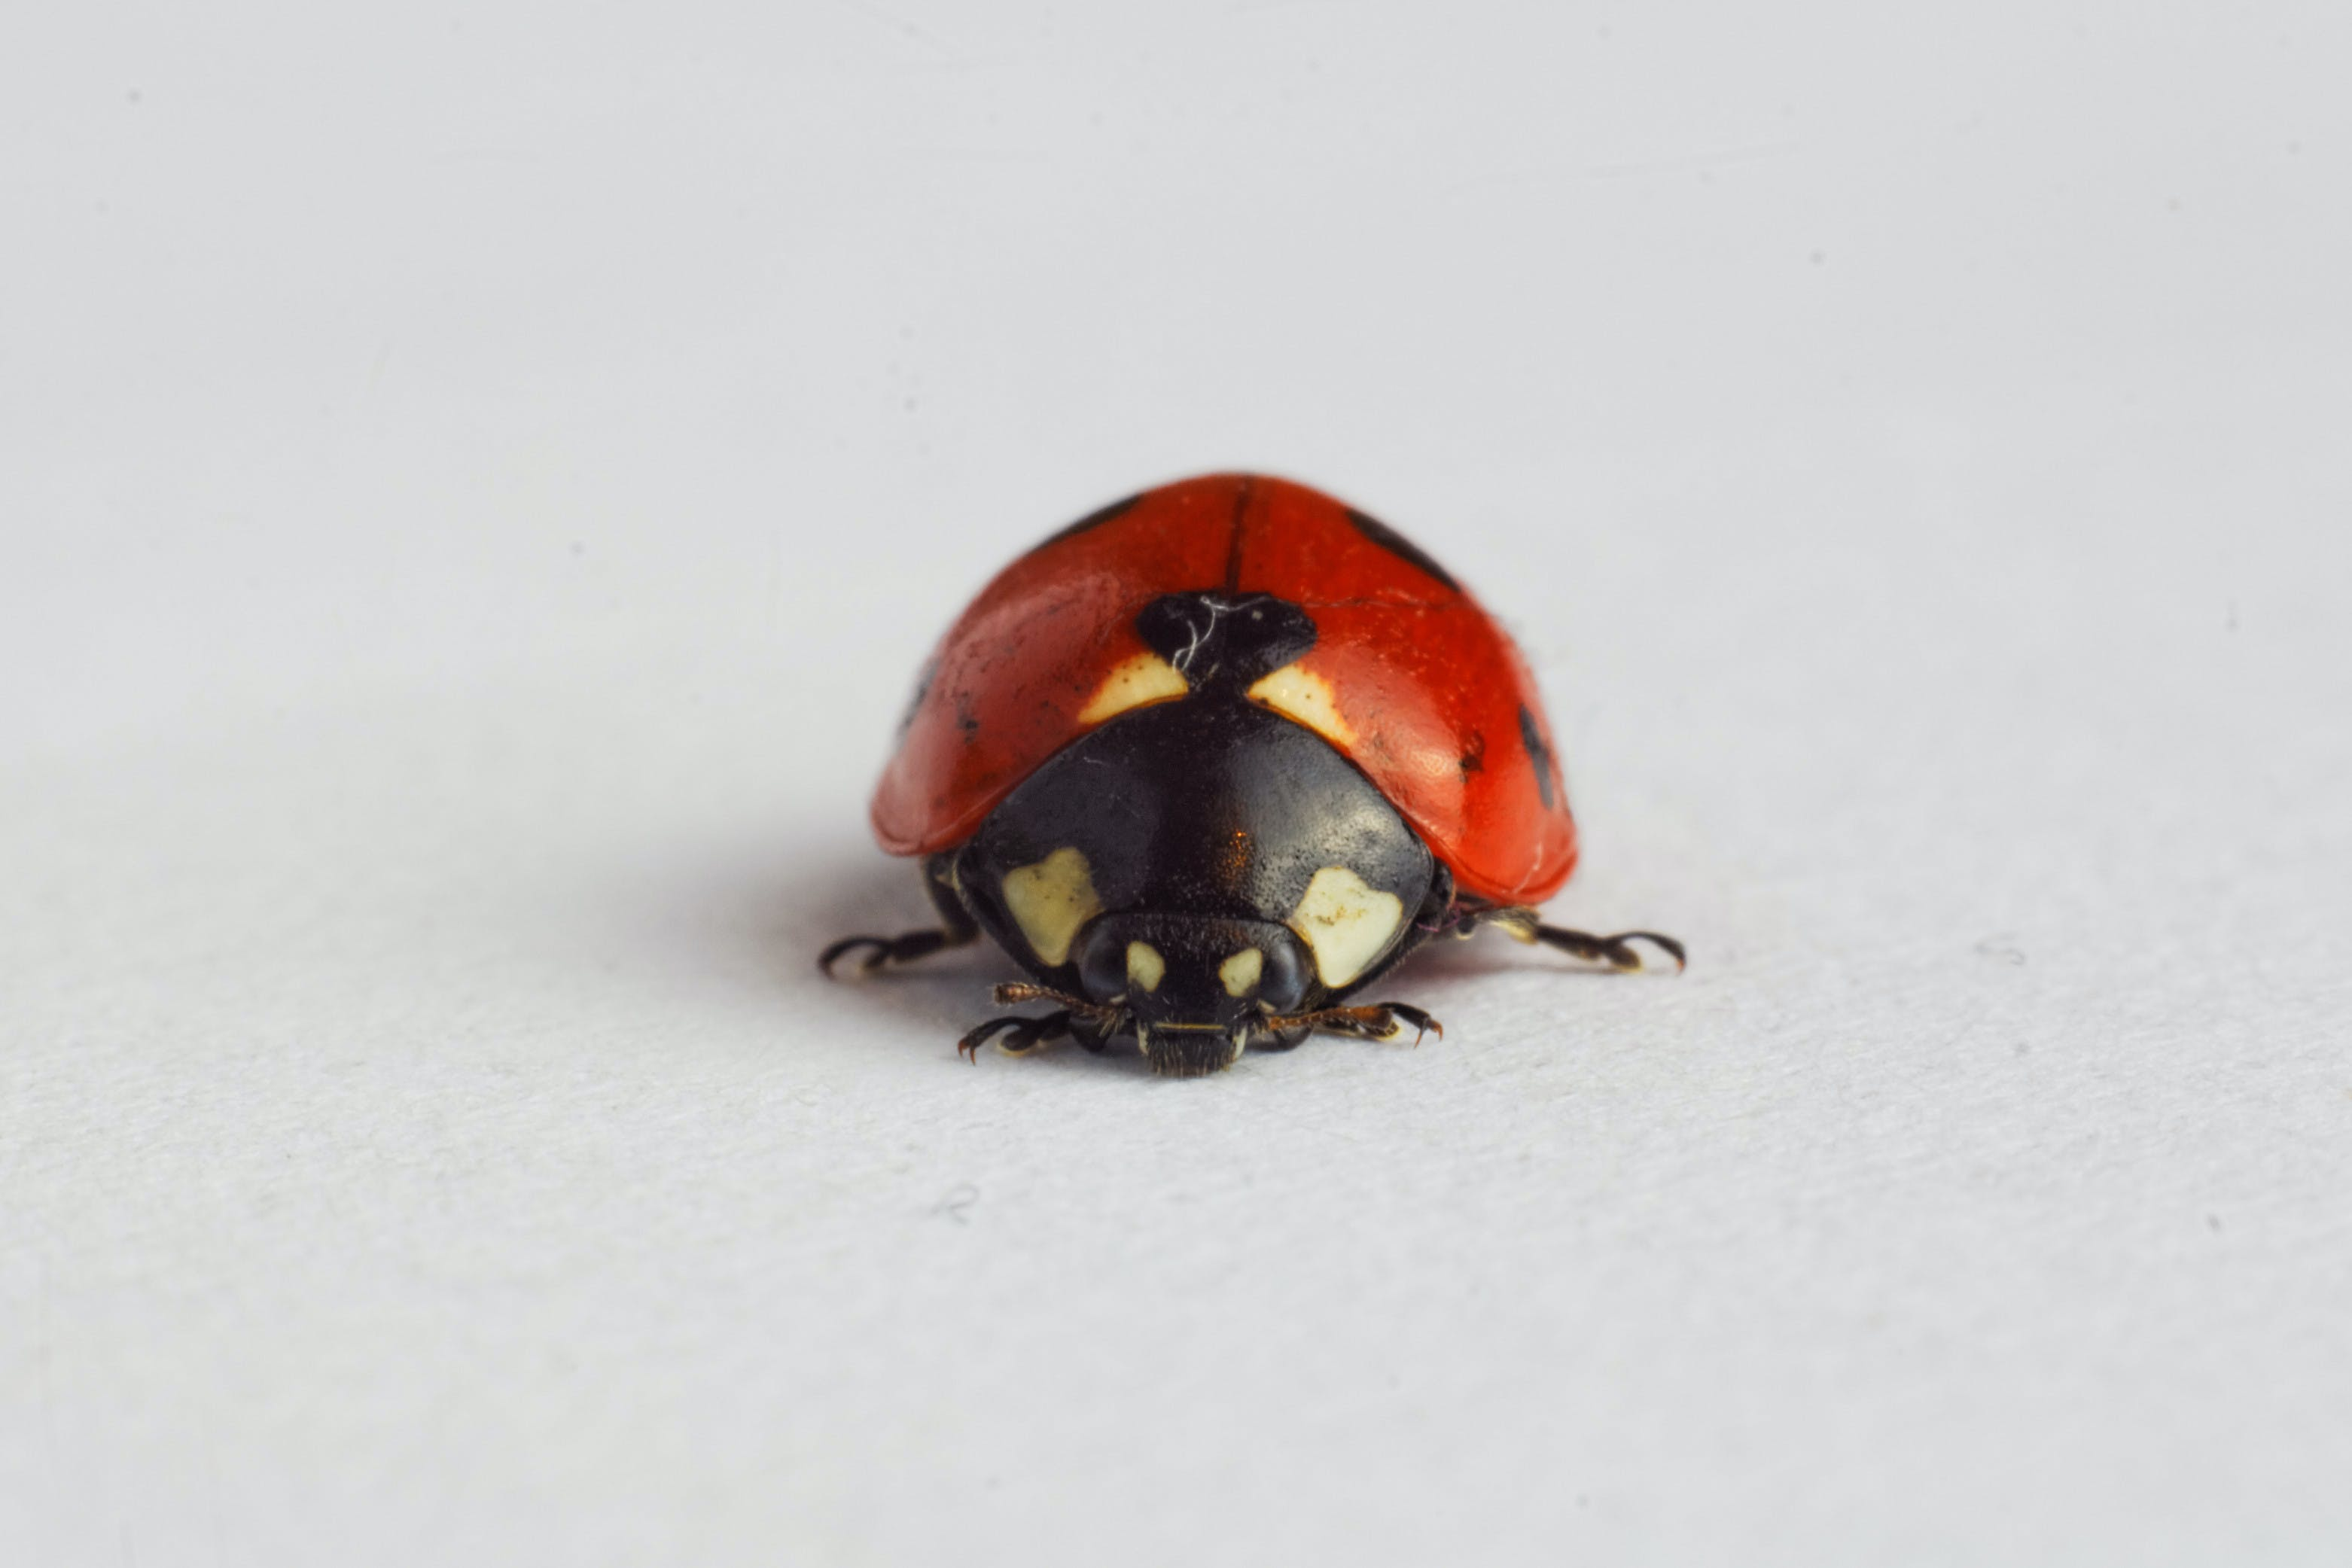 Ladybug on White Surface